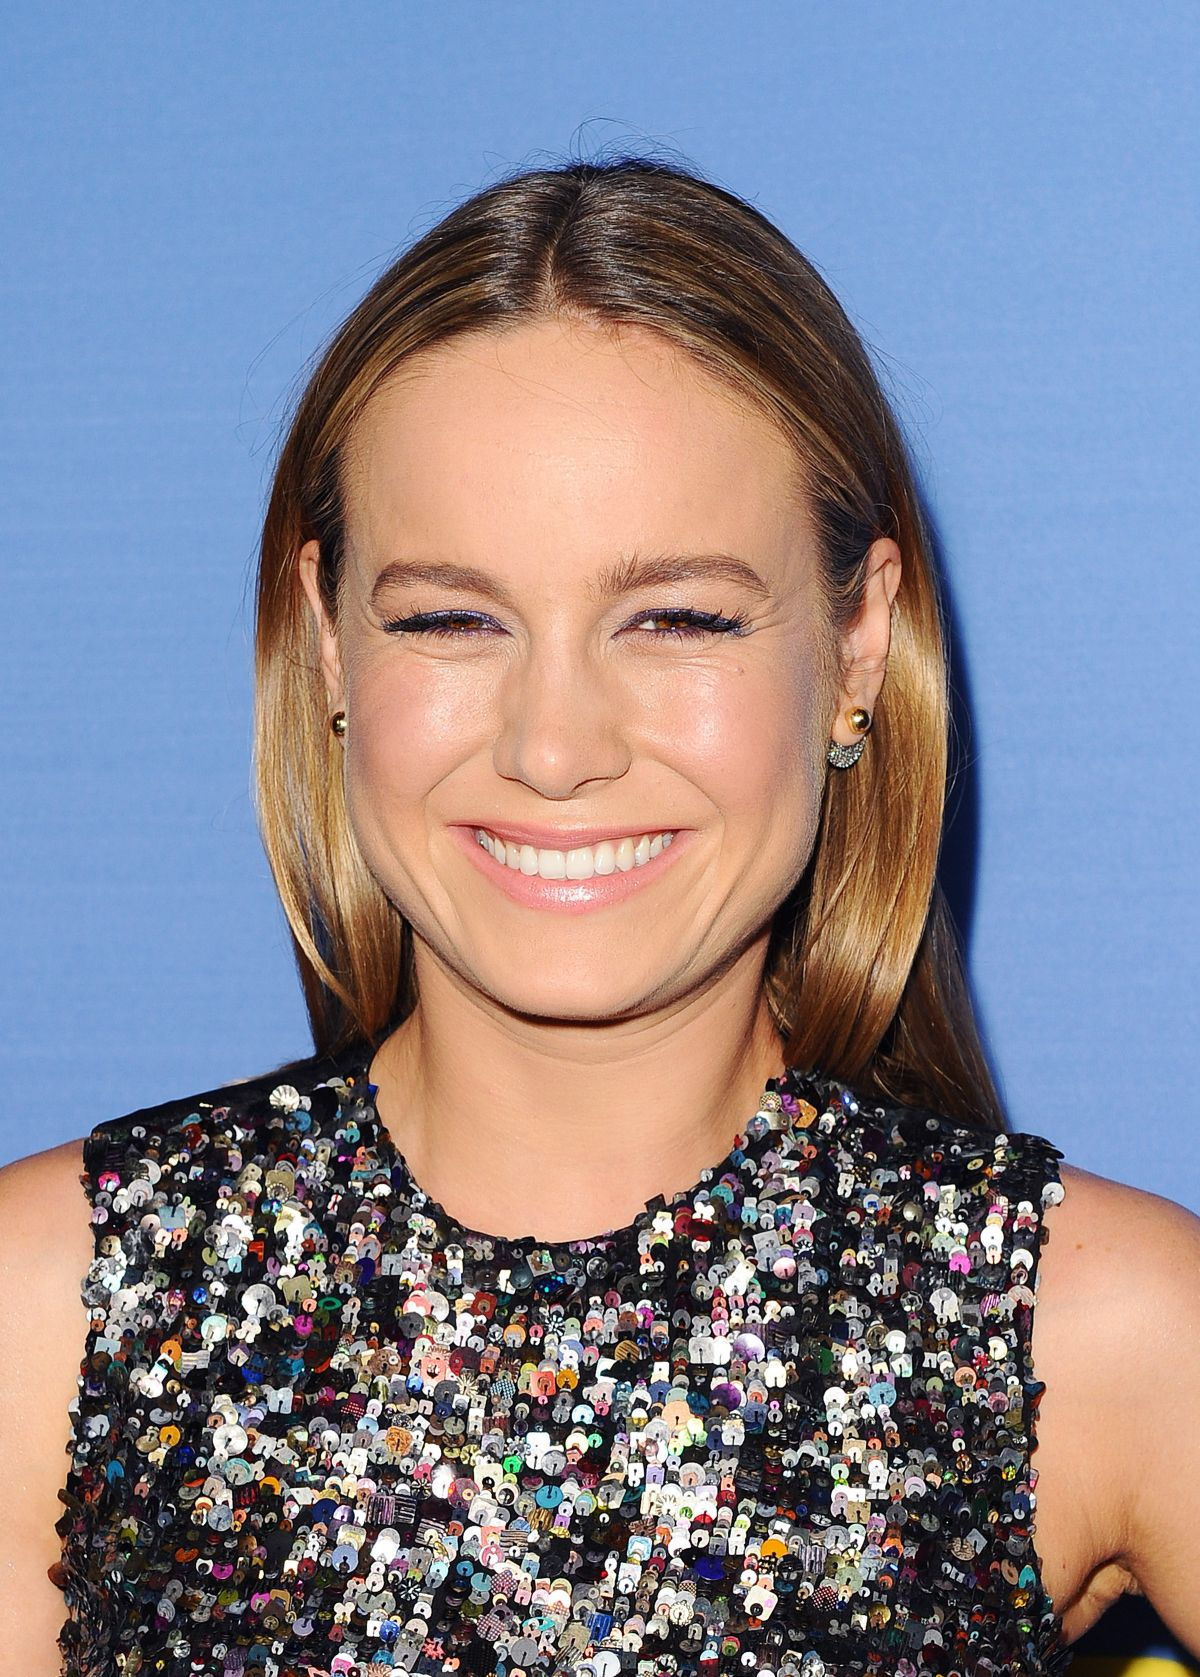 Brie Larson At Room Premiere In West Hollywood 10 13 2015